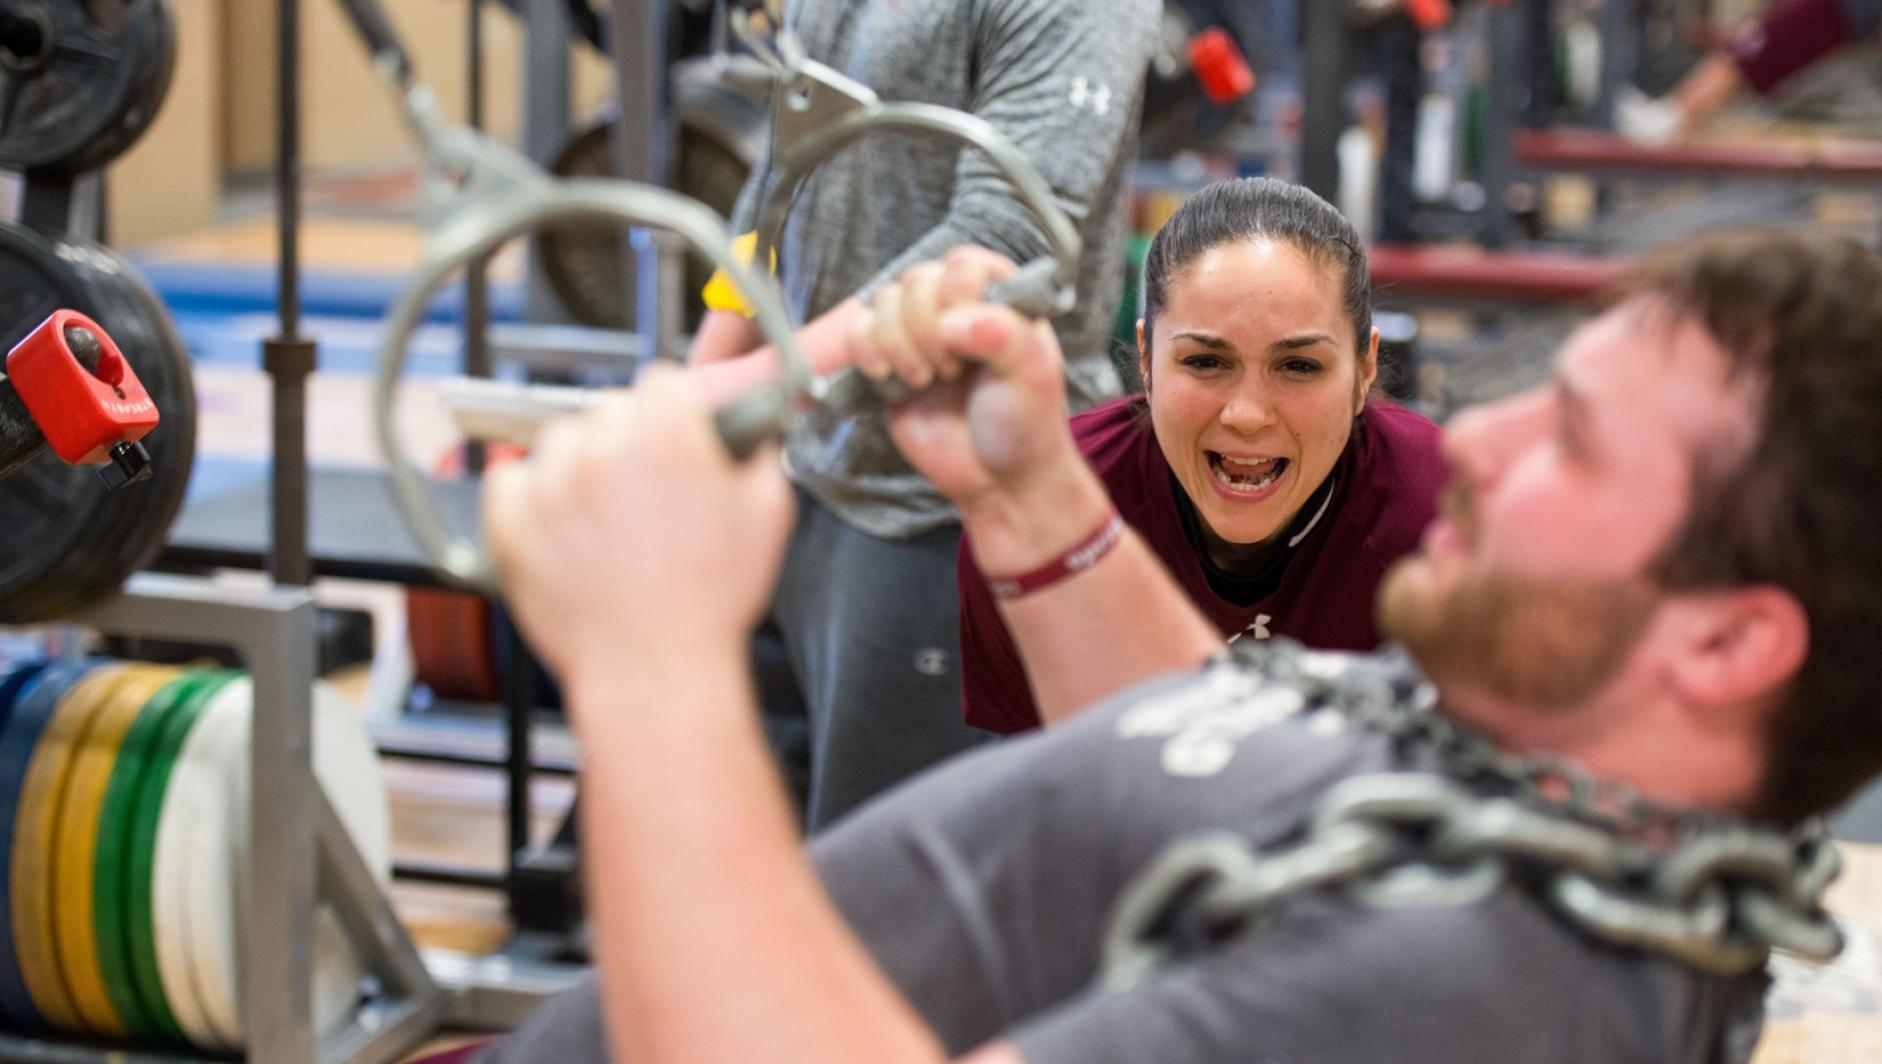 A student strength and conditioning coach yells words of encouragement as a student works out his arms.